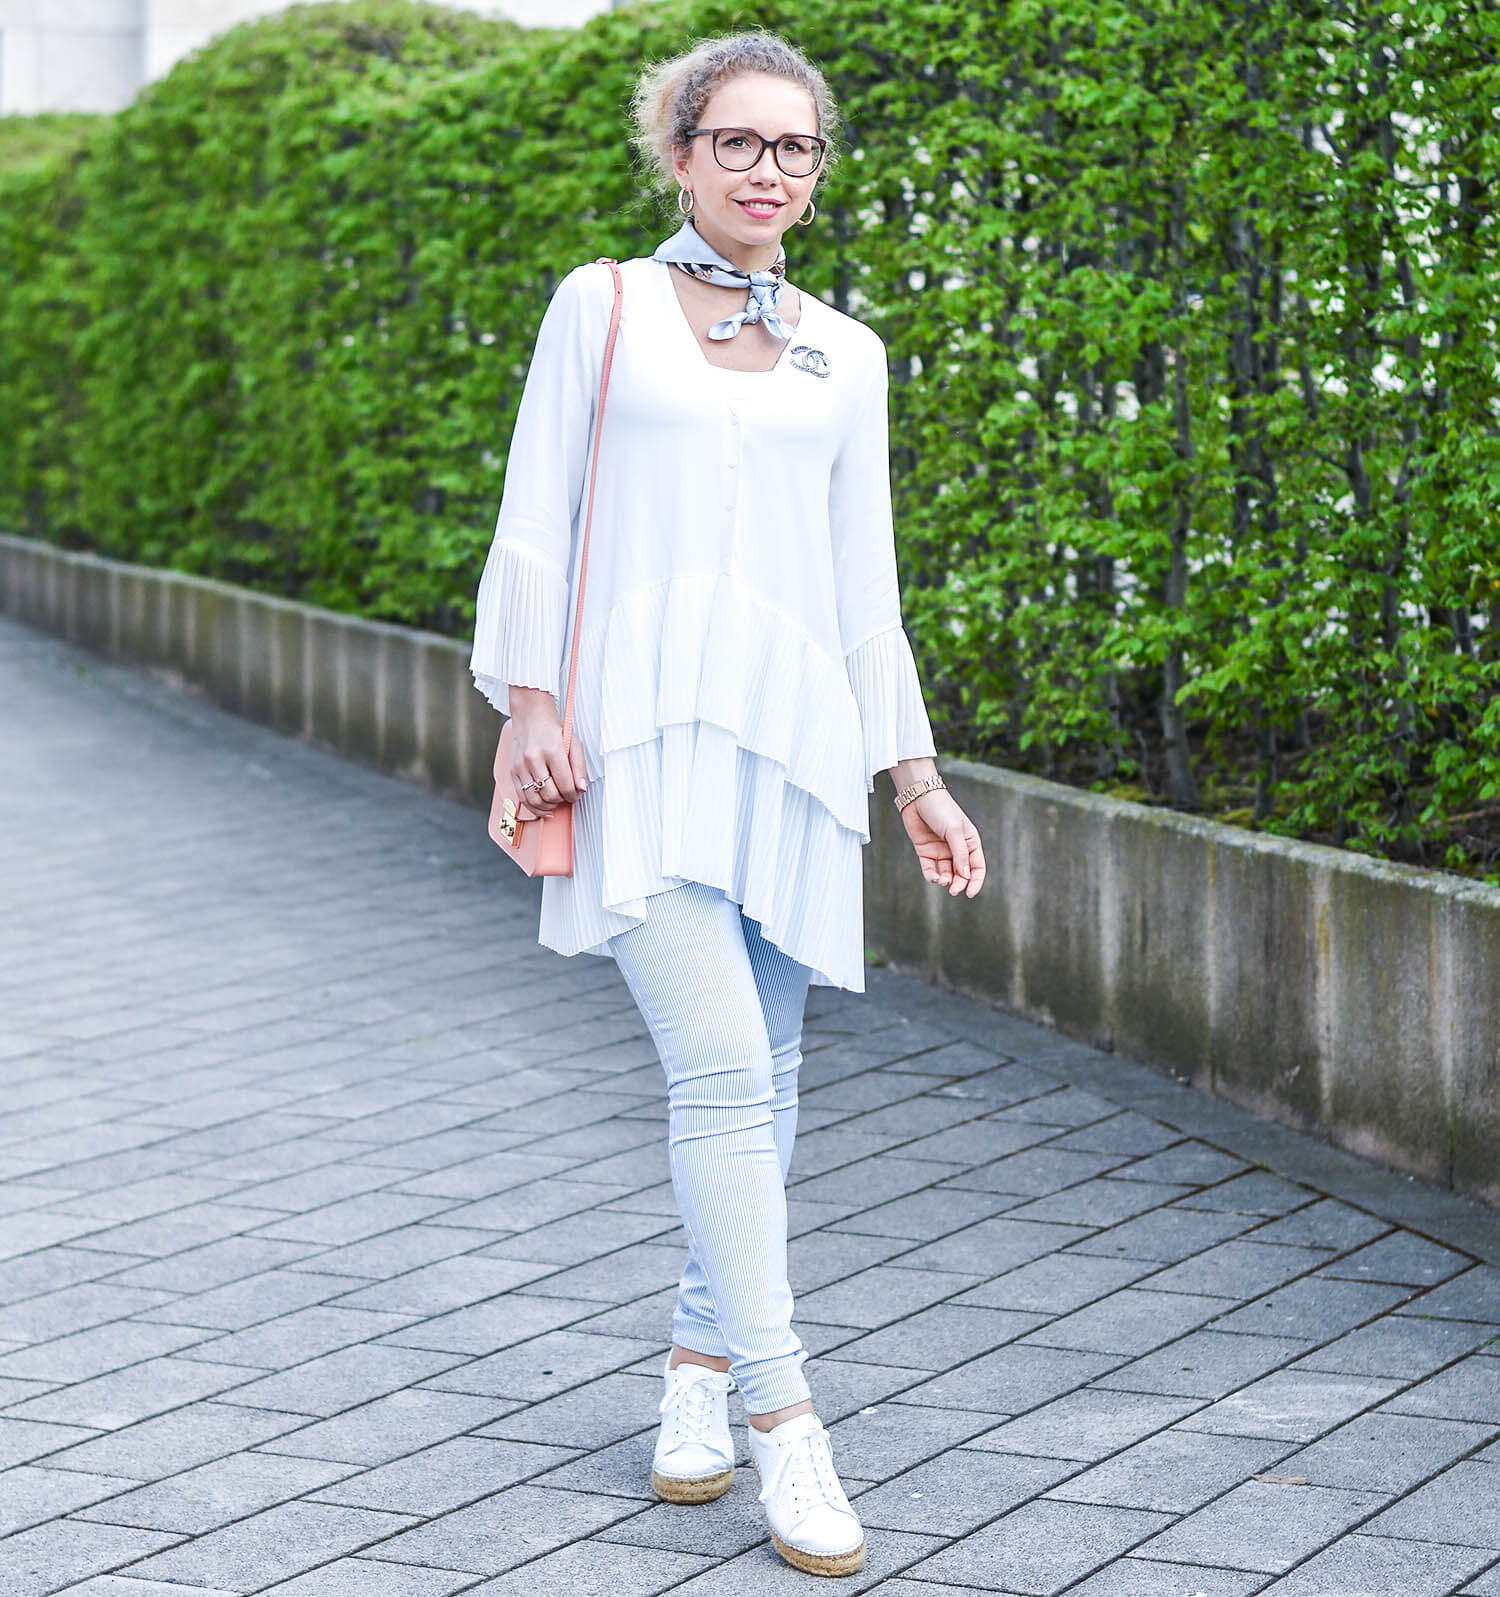 Outfit-Zara-Pleated-Blouse-Furla-Bag-and-Steve-Madden-platform-Sneakers-kationette-fashionblogger-nrw